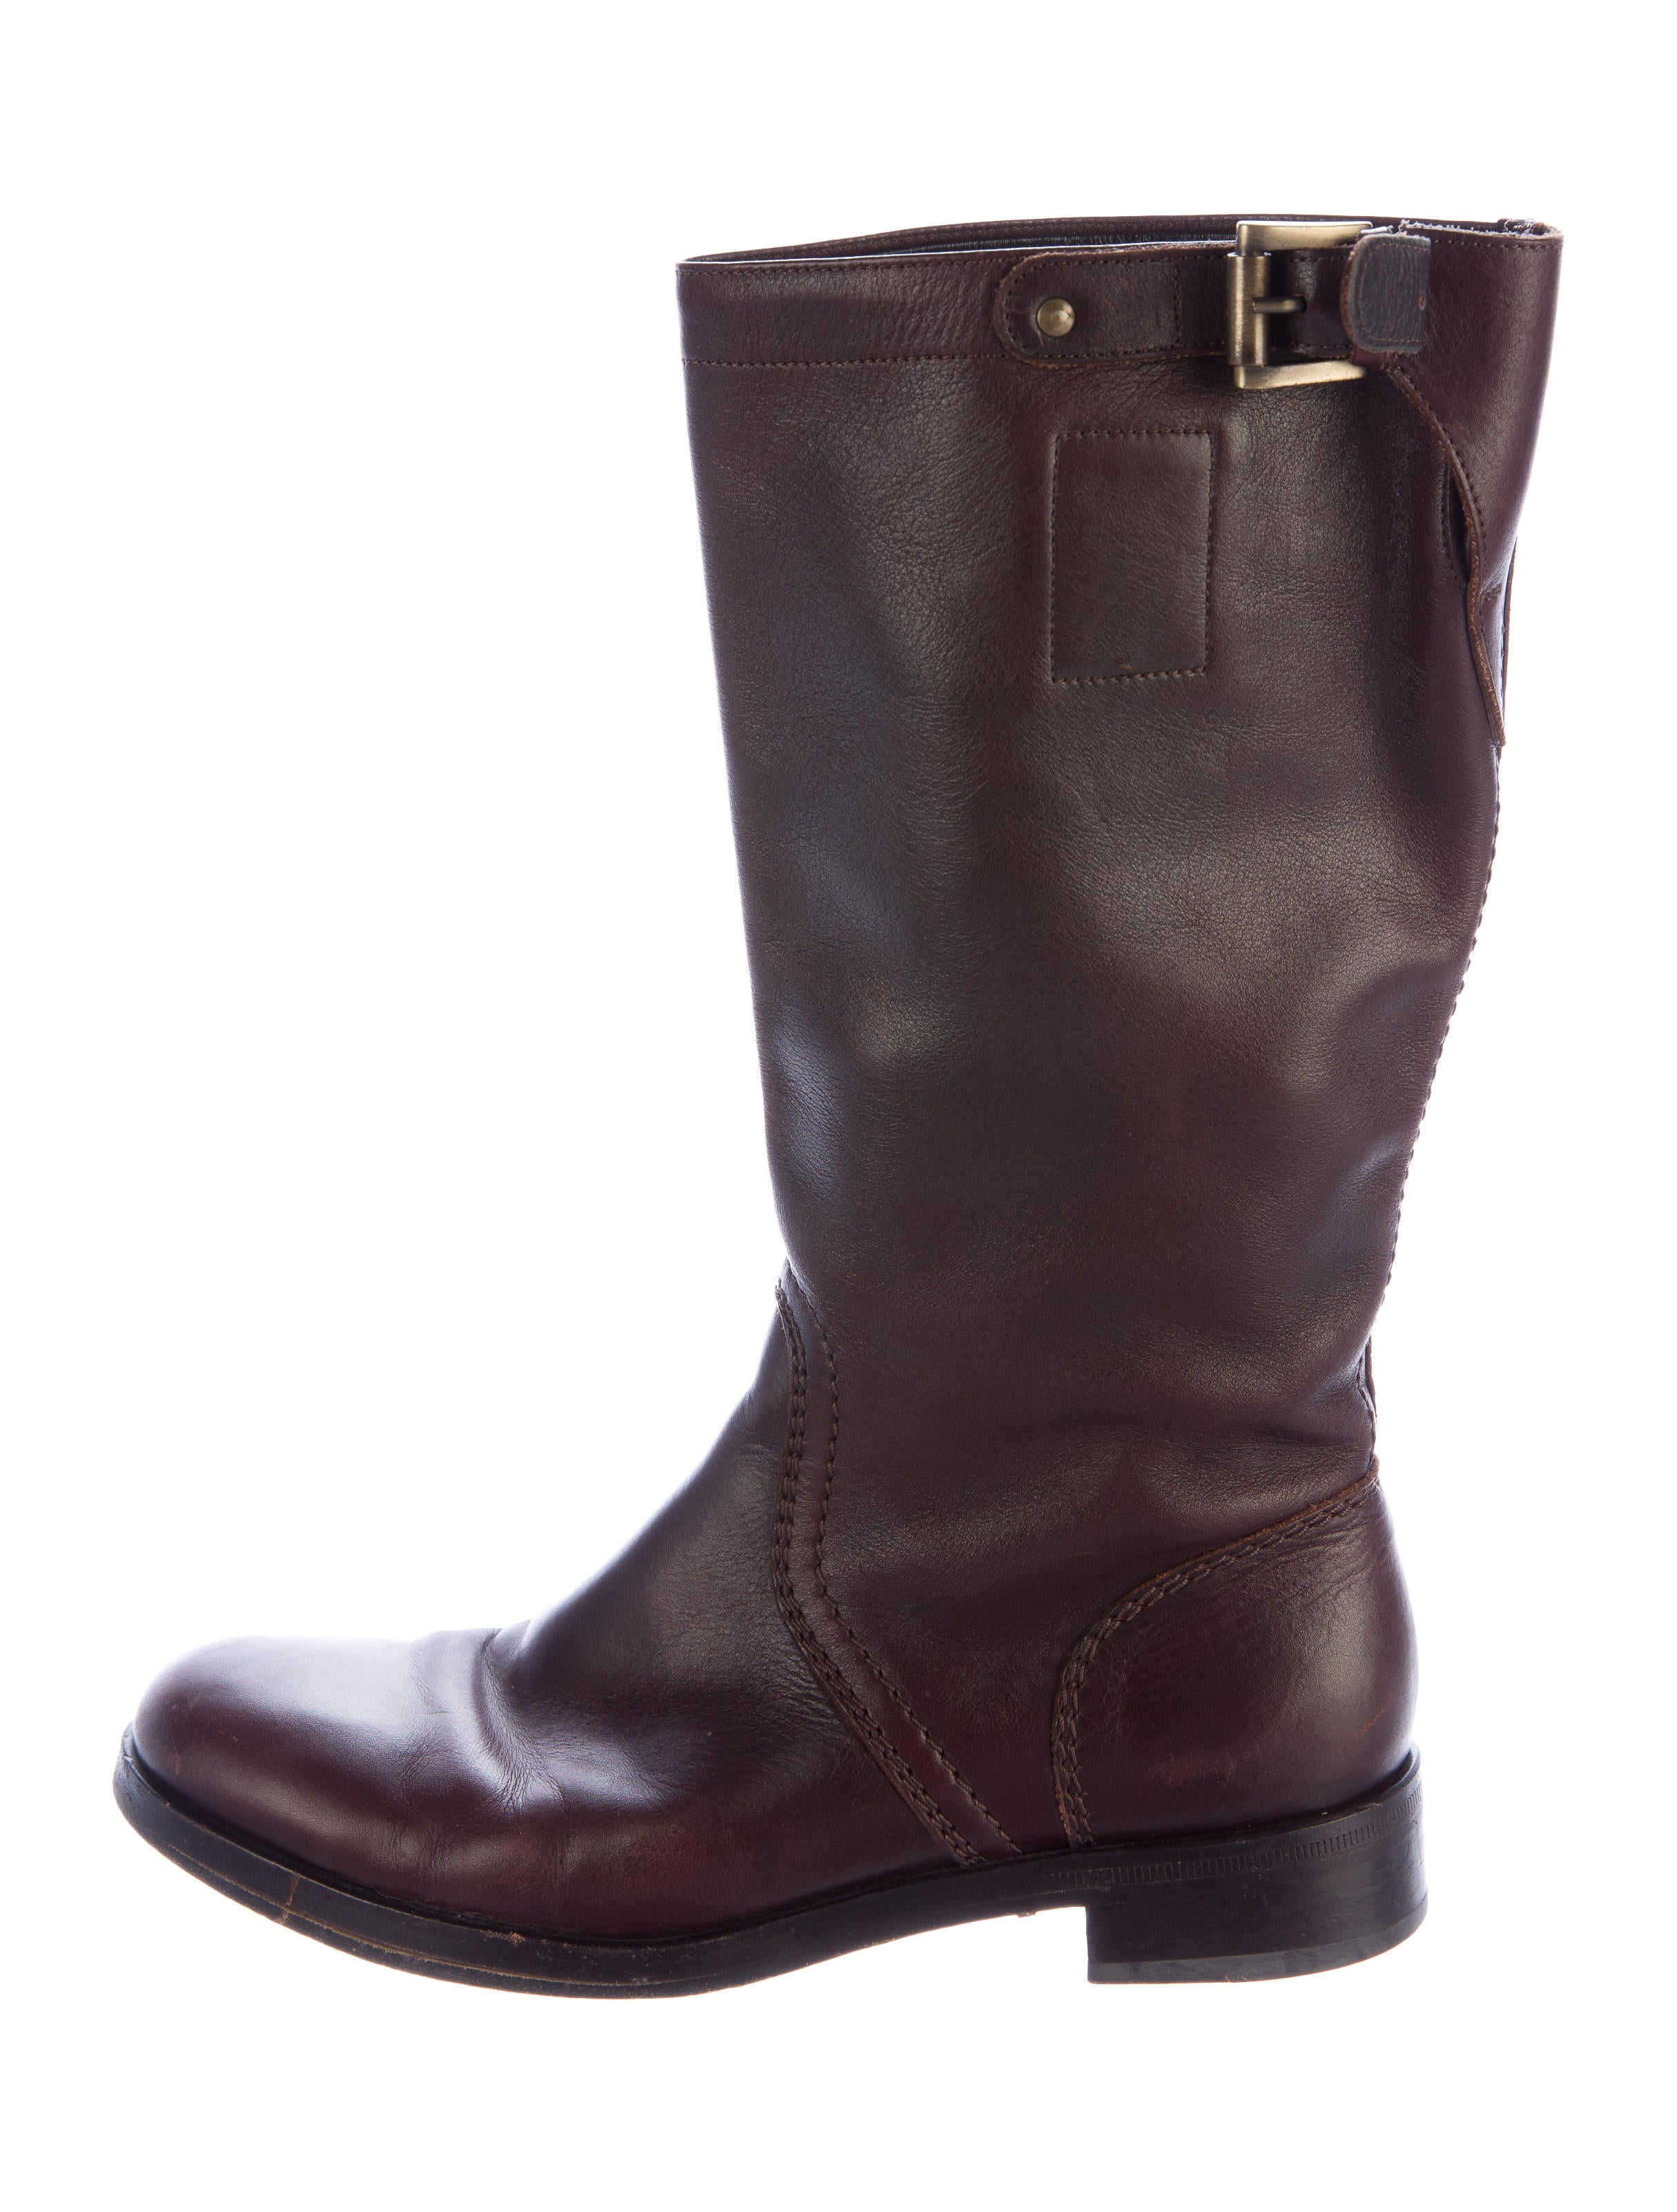 jil sander leather mid calf boots shoes jil38225 the